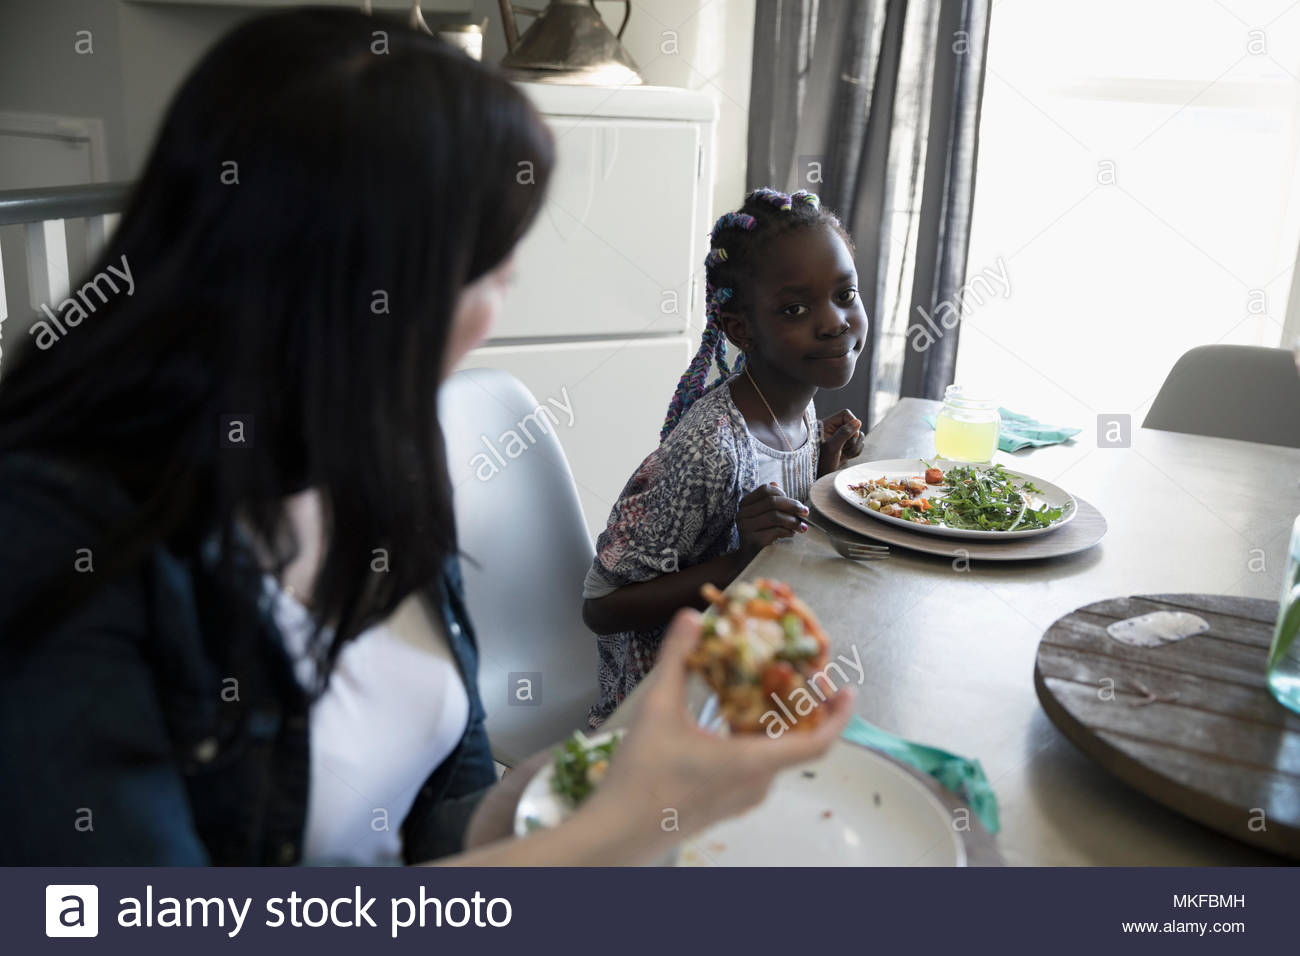 Mother and daughter eating pizza and salad at dining table - Stock Image